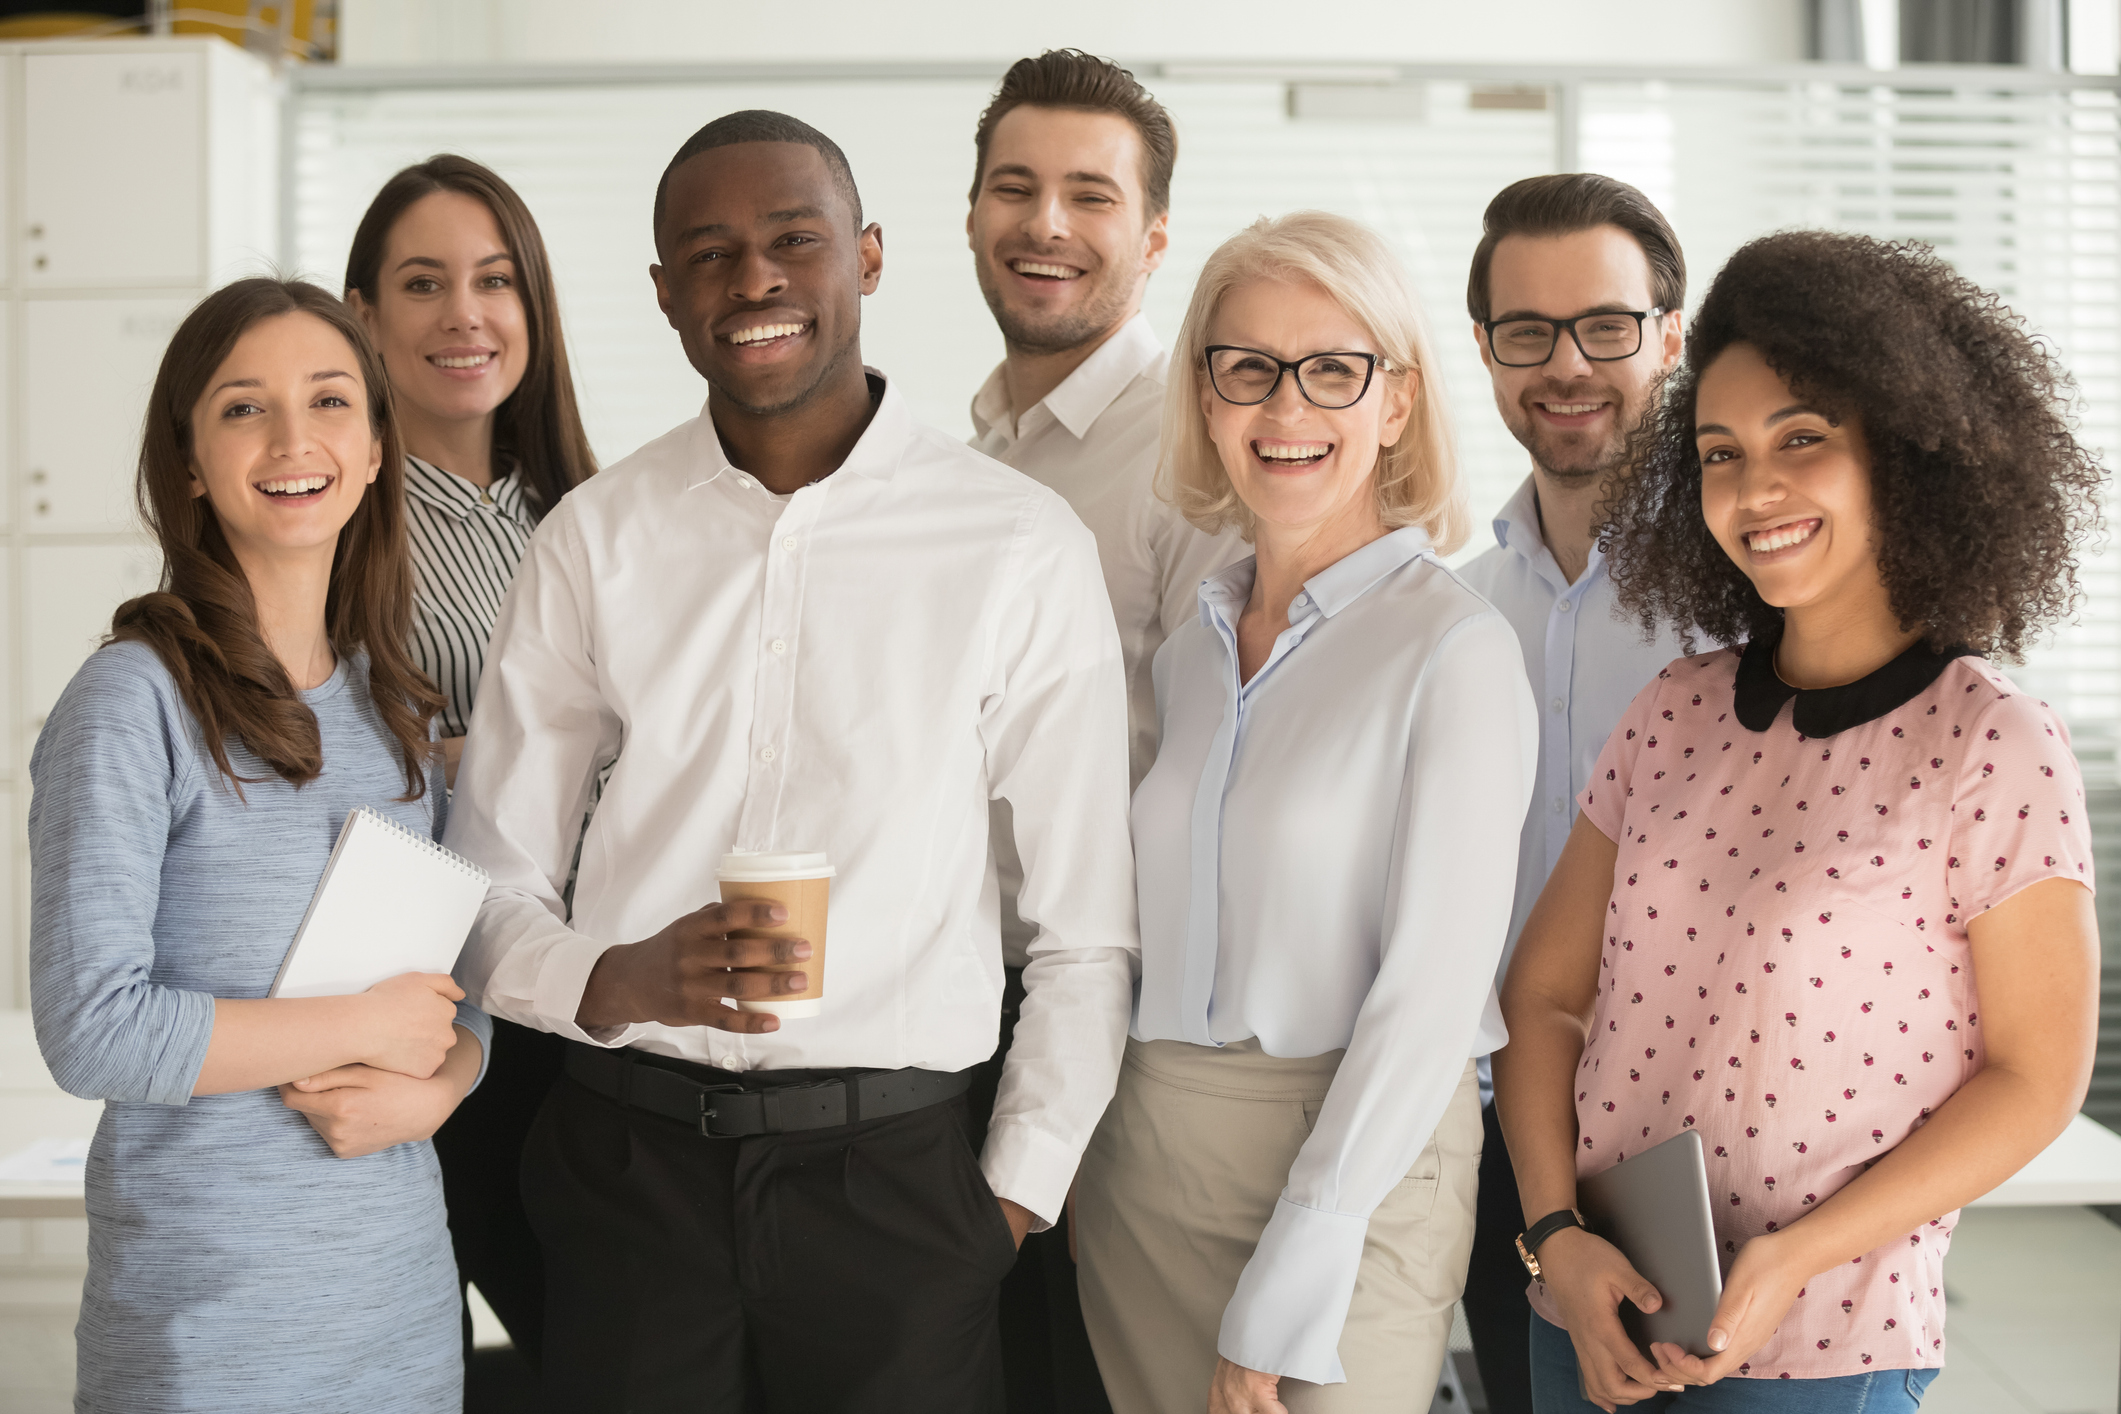 Group of office employees smiling and looking motivated